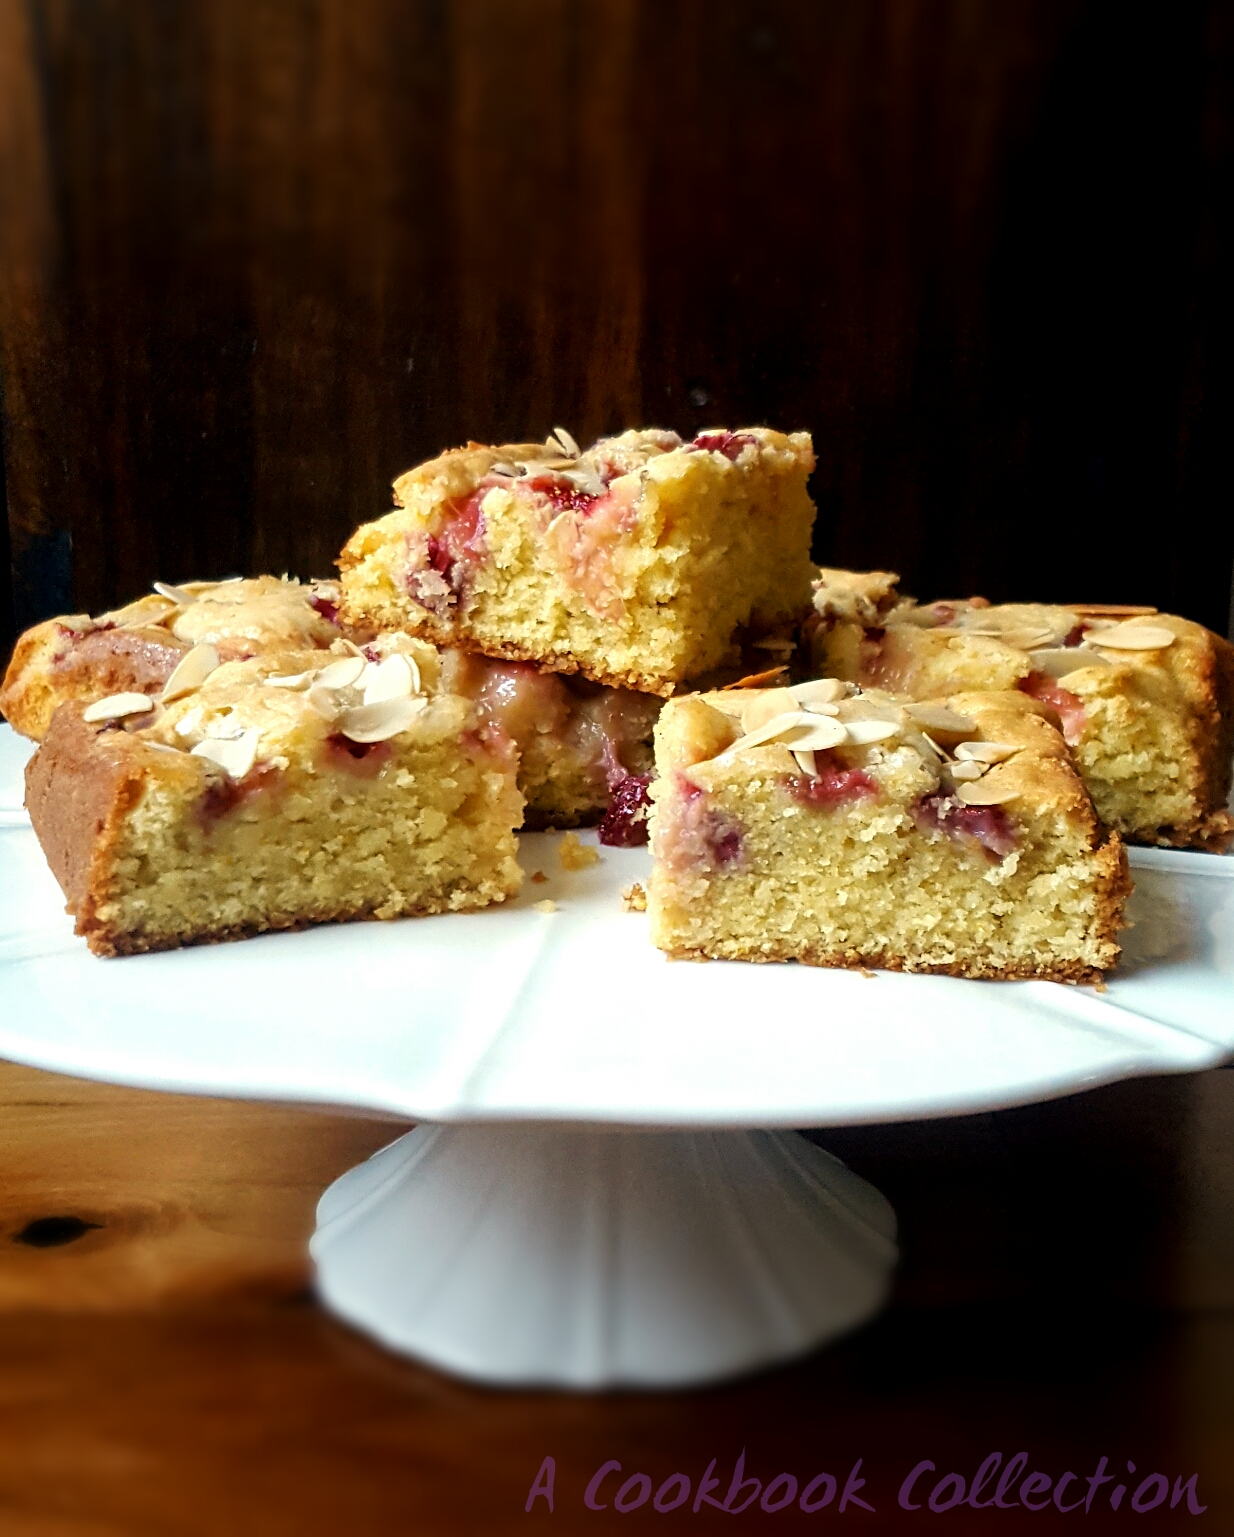 Rhubarb and Strawberry Cake- A Cookbook Collection